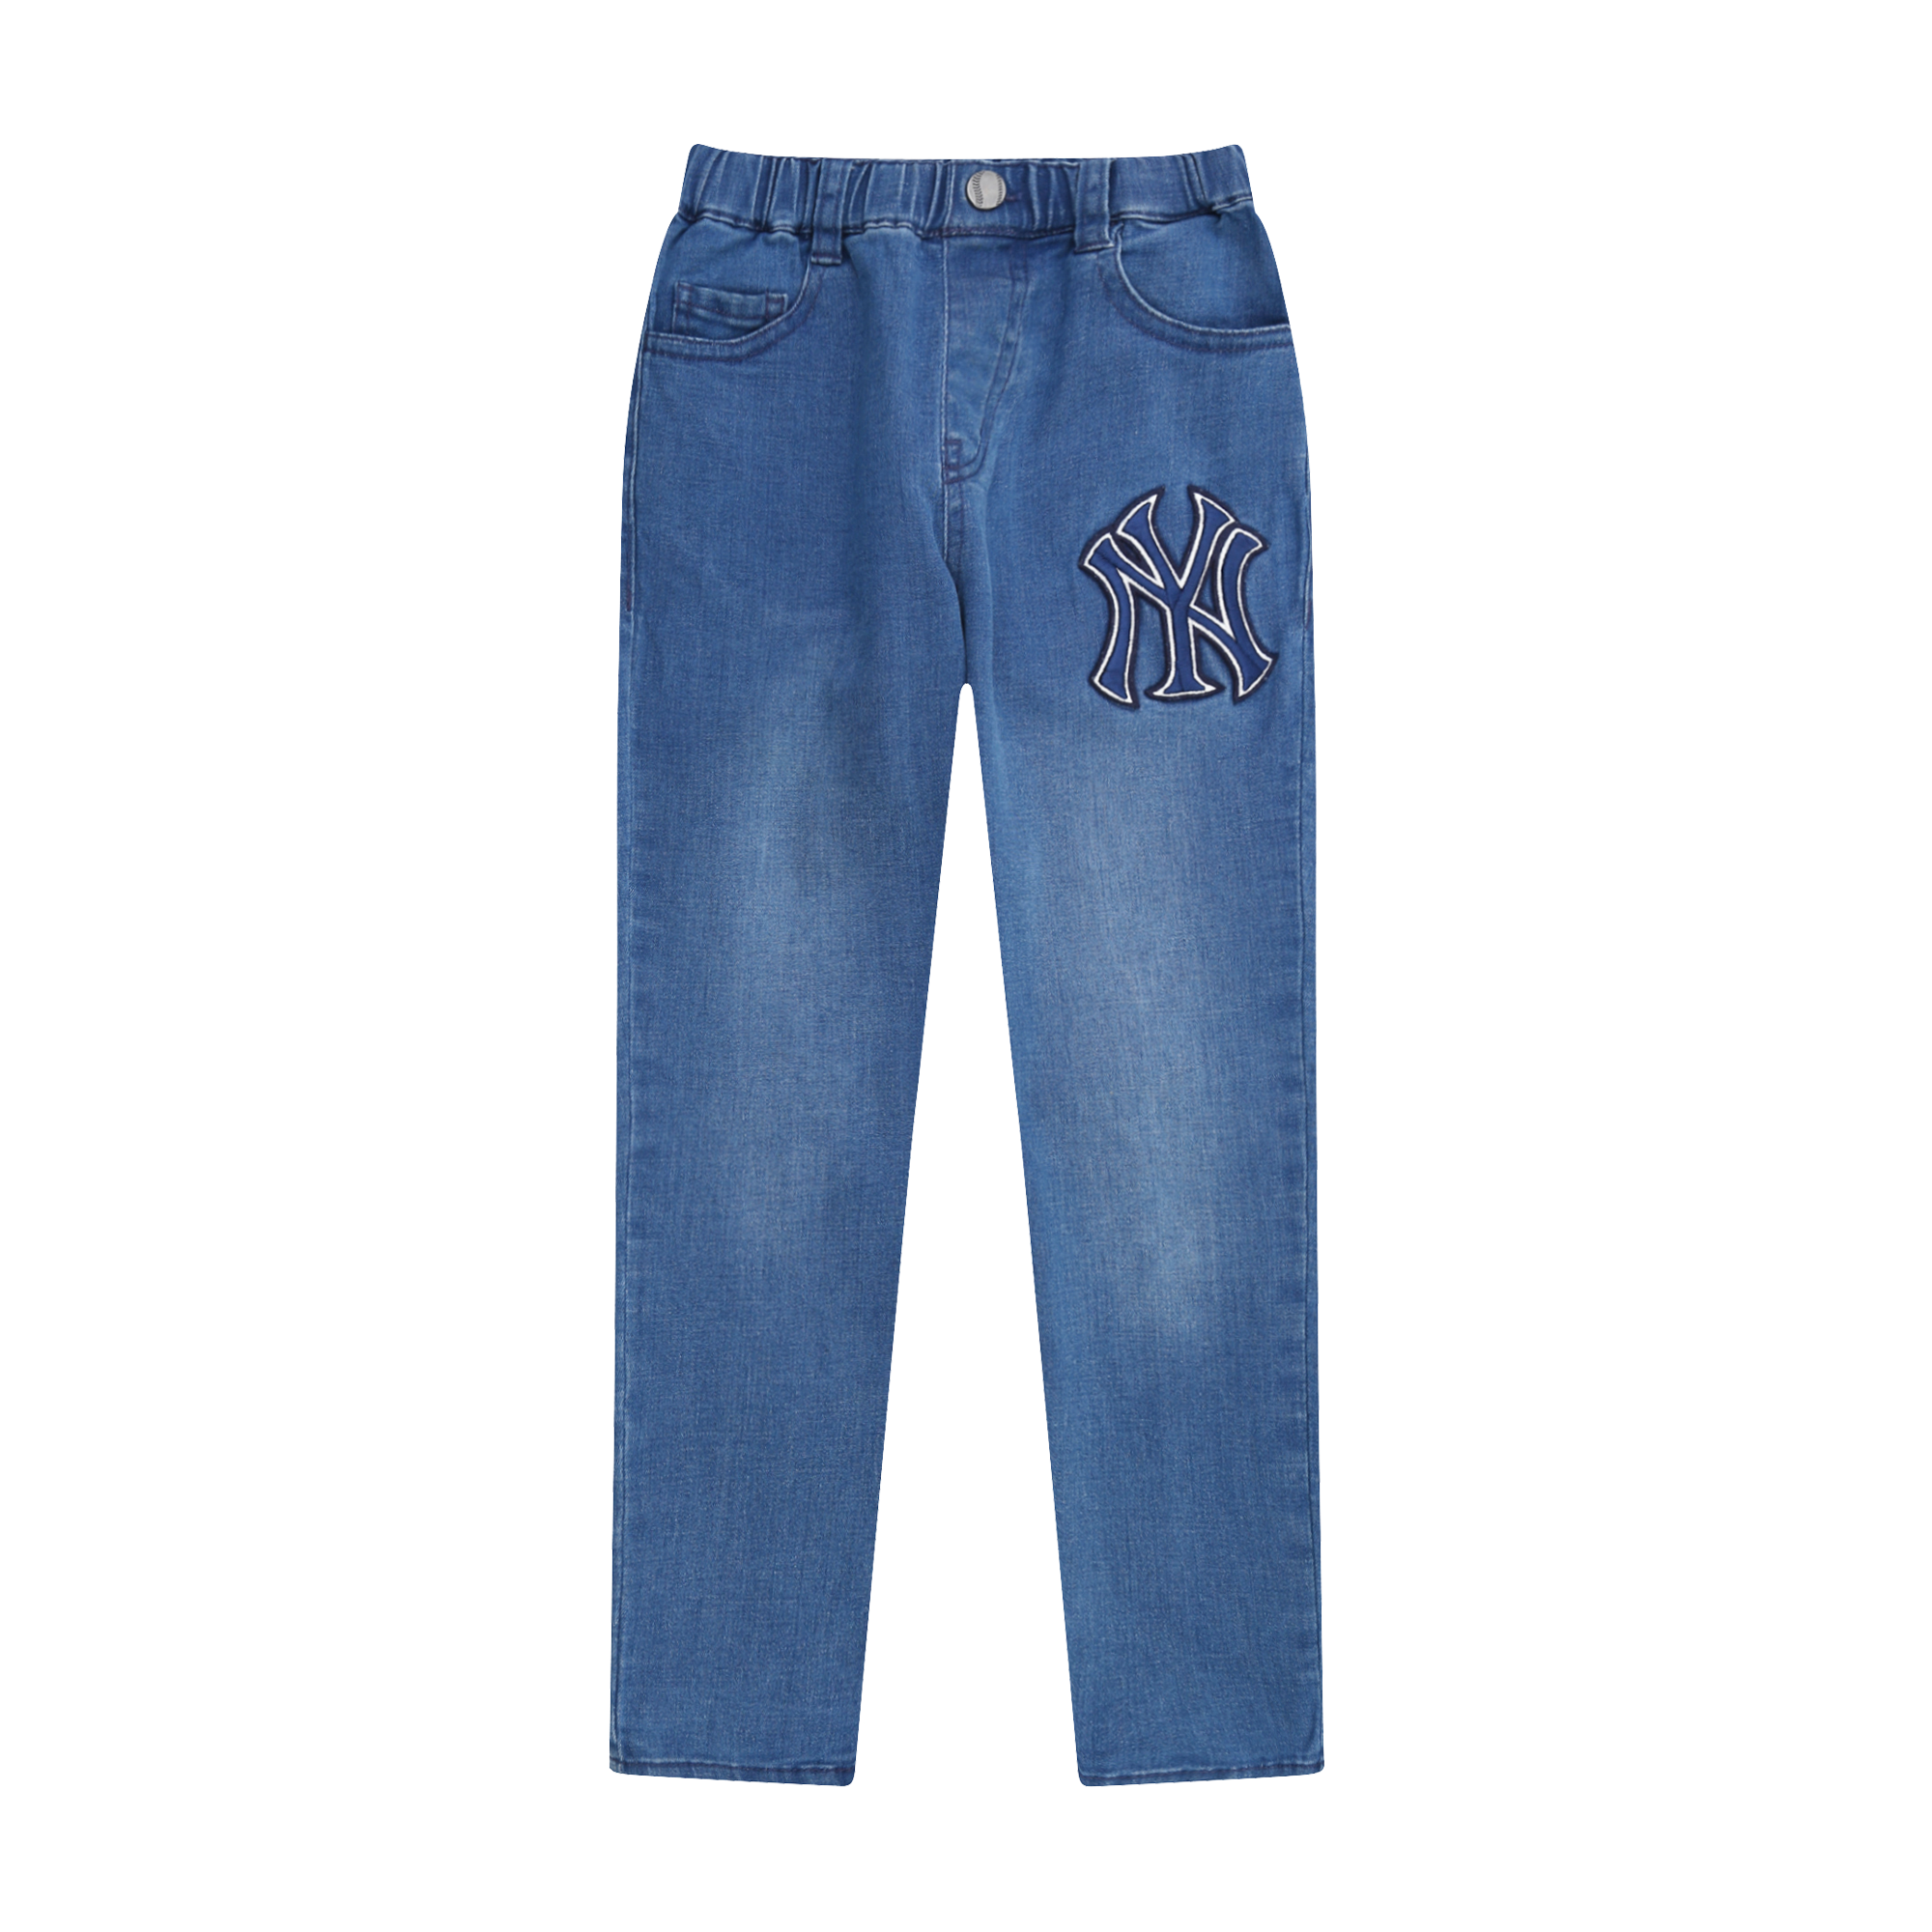 NEW YORK YANKEES UNISEX BIG LOGO DENIM PANTS